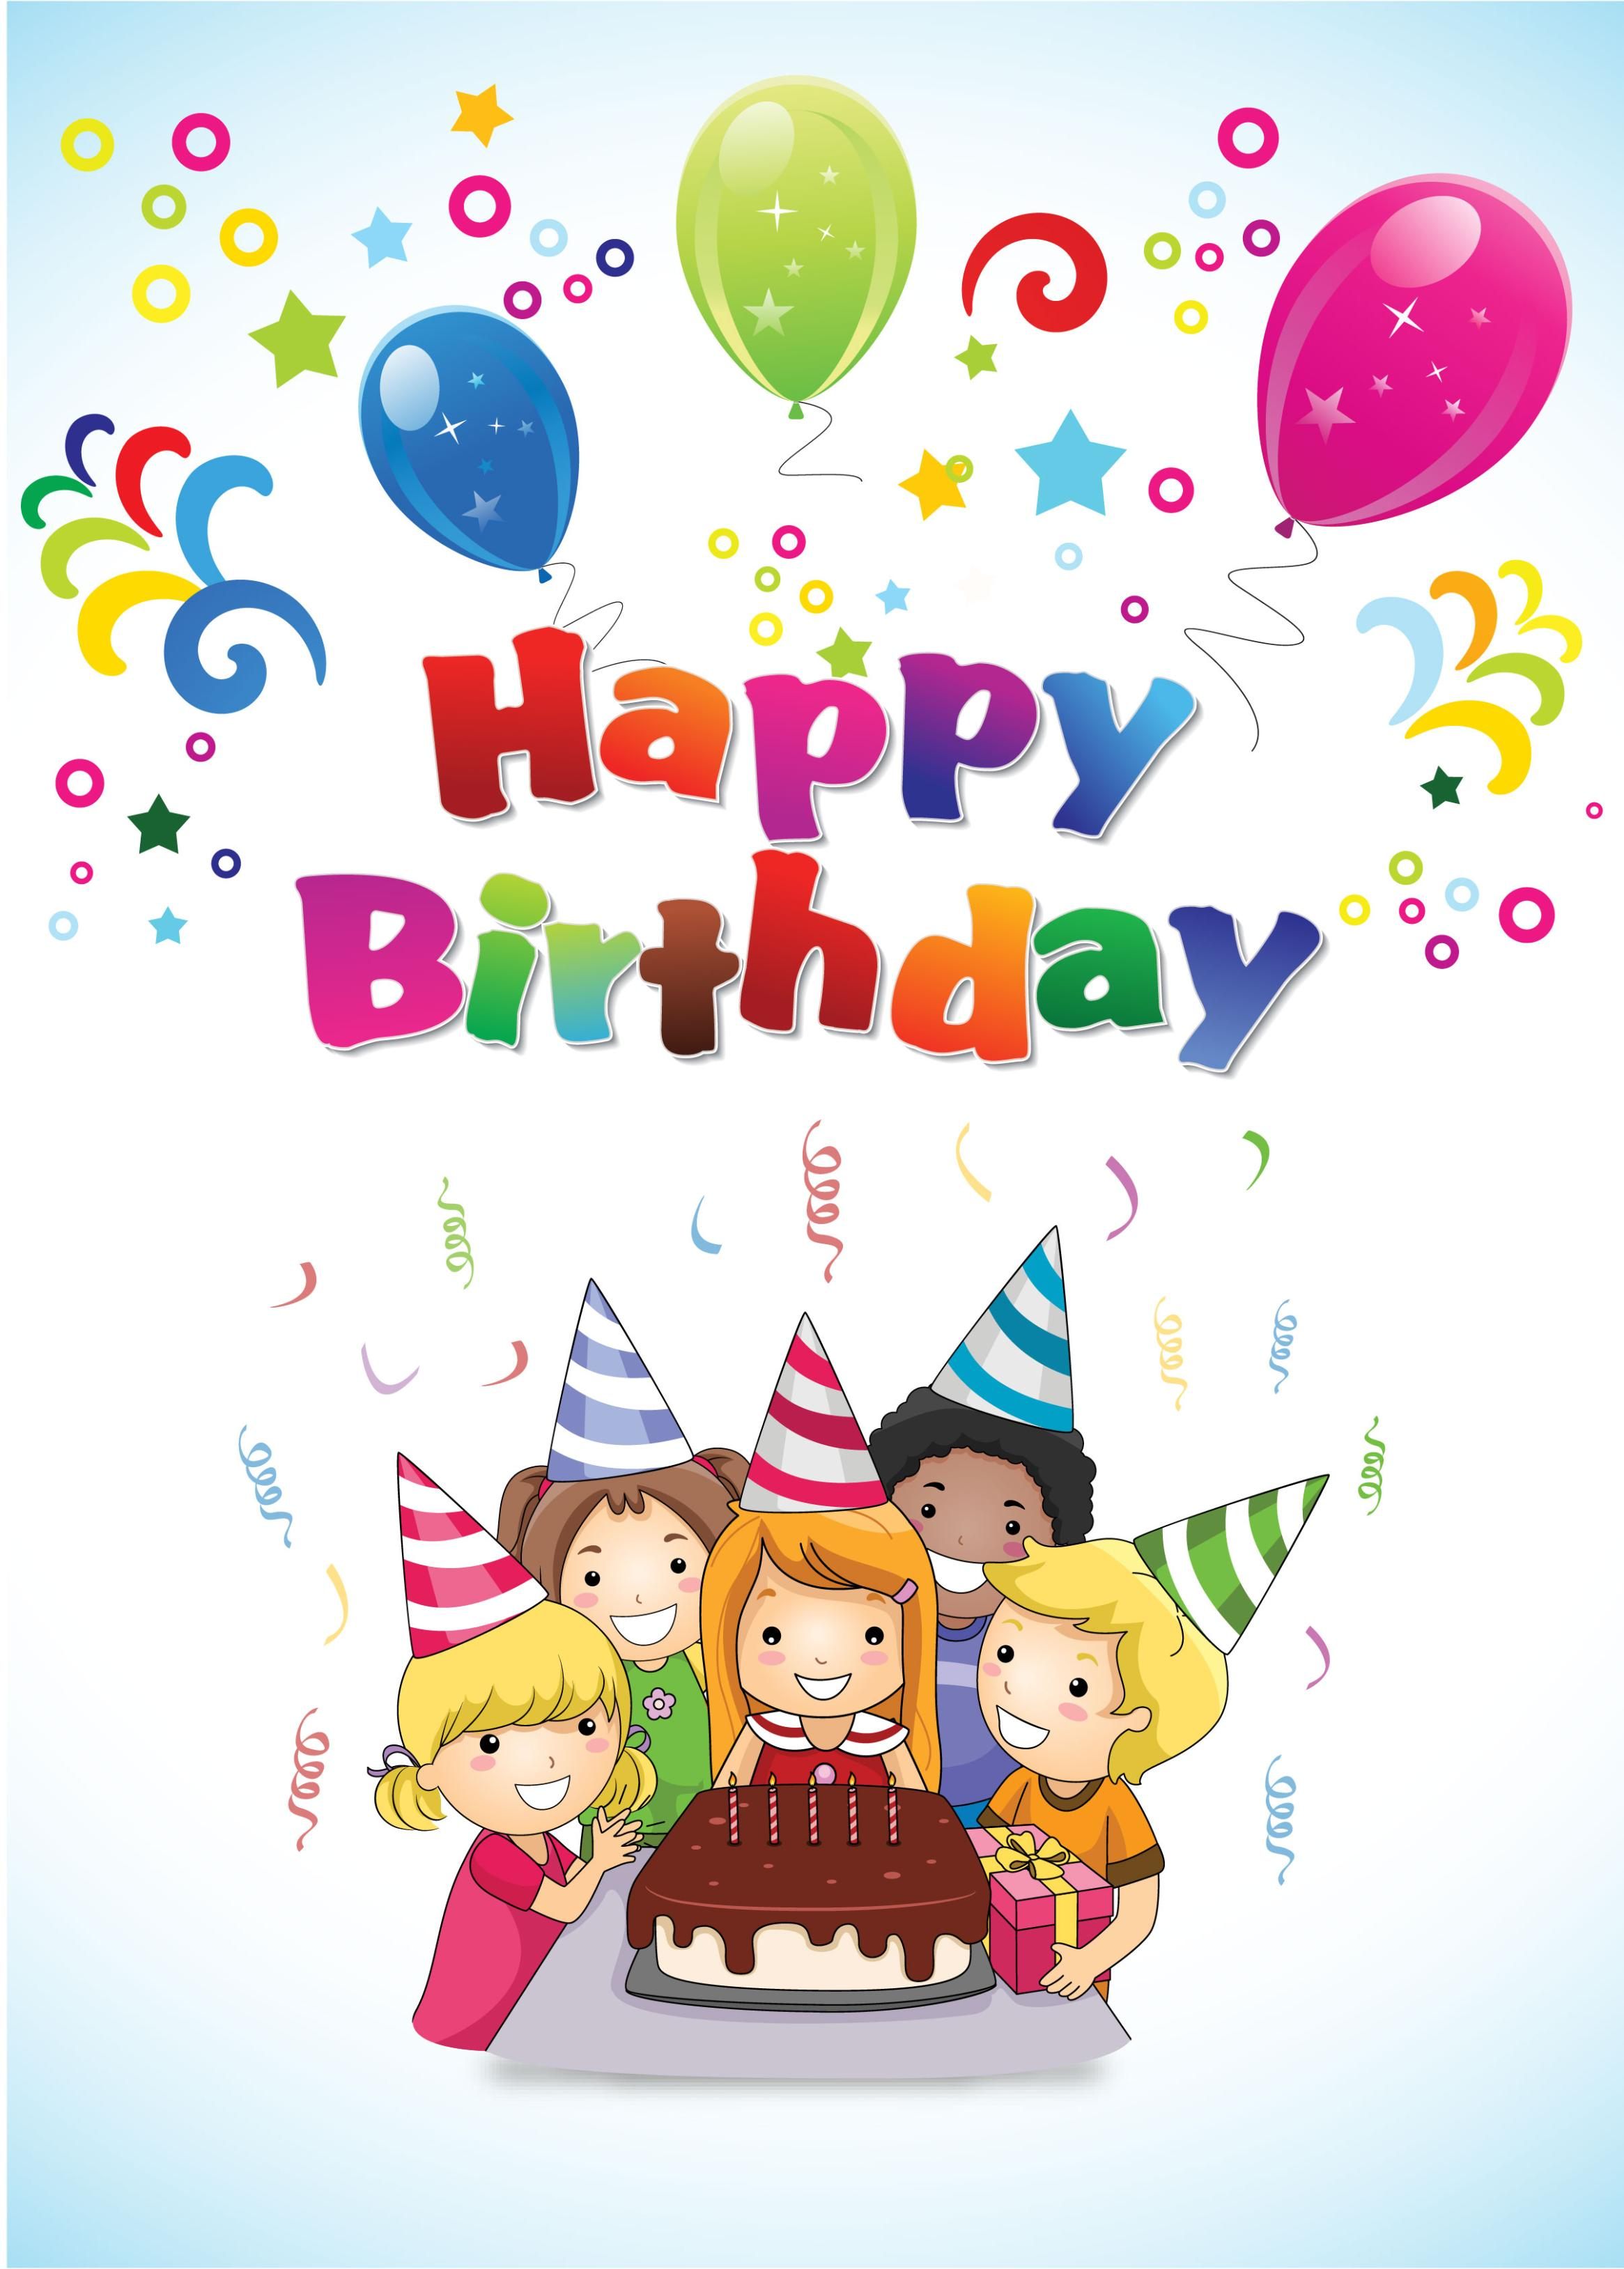 happy birthday card design images ; Colorful-Birthday-Cards-combined-with-your-creativity-will-make-this-looks-awesome-19